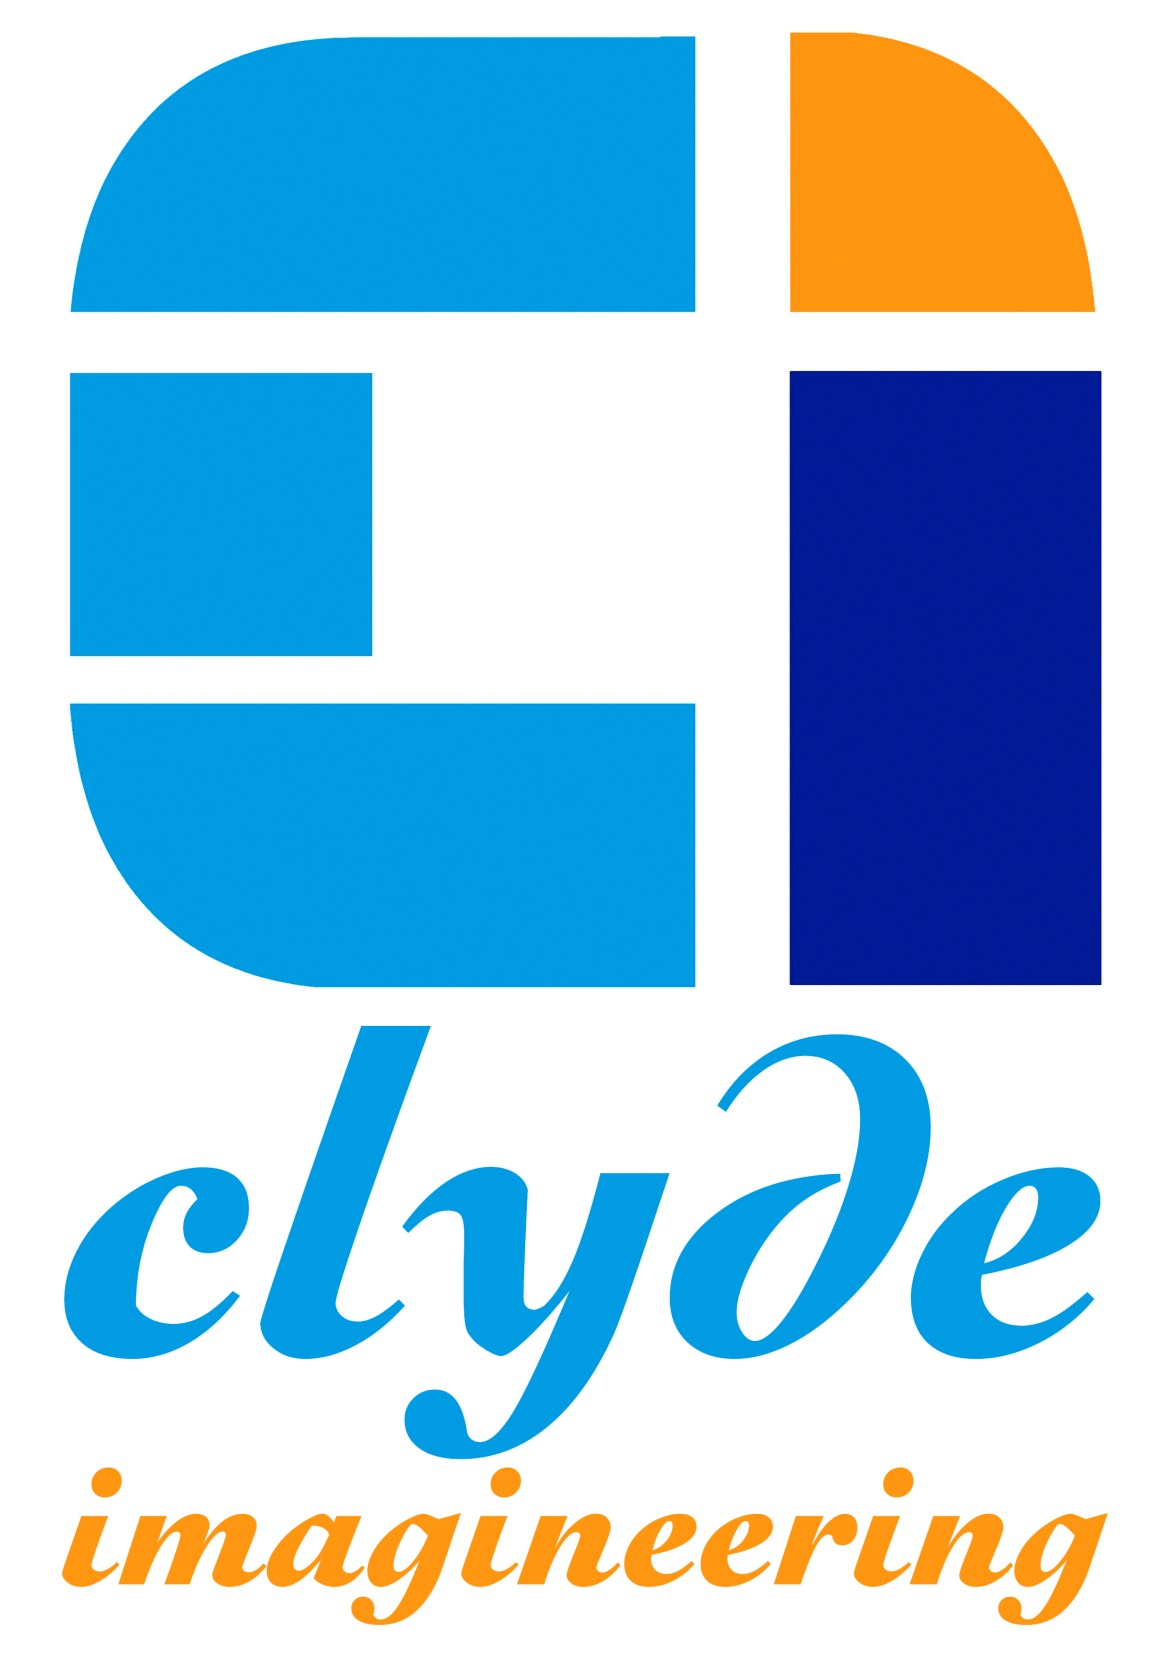 Clyde Imagineering